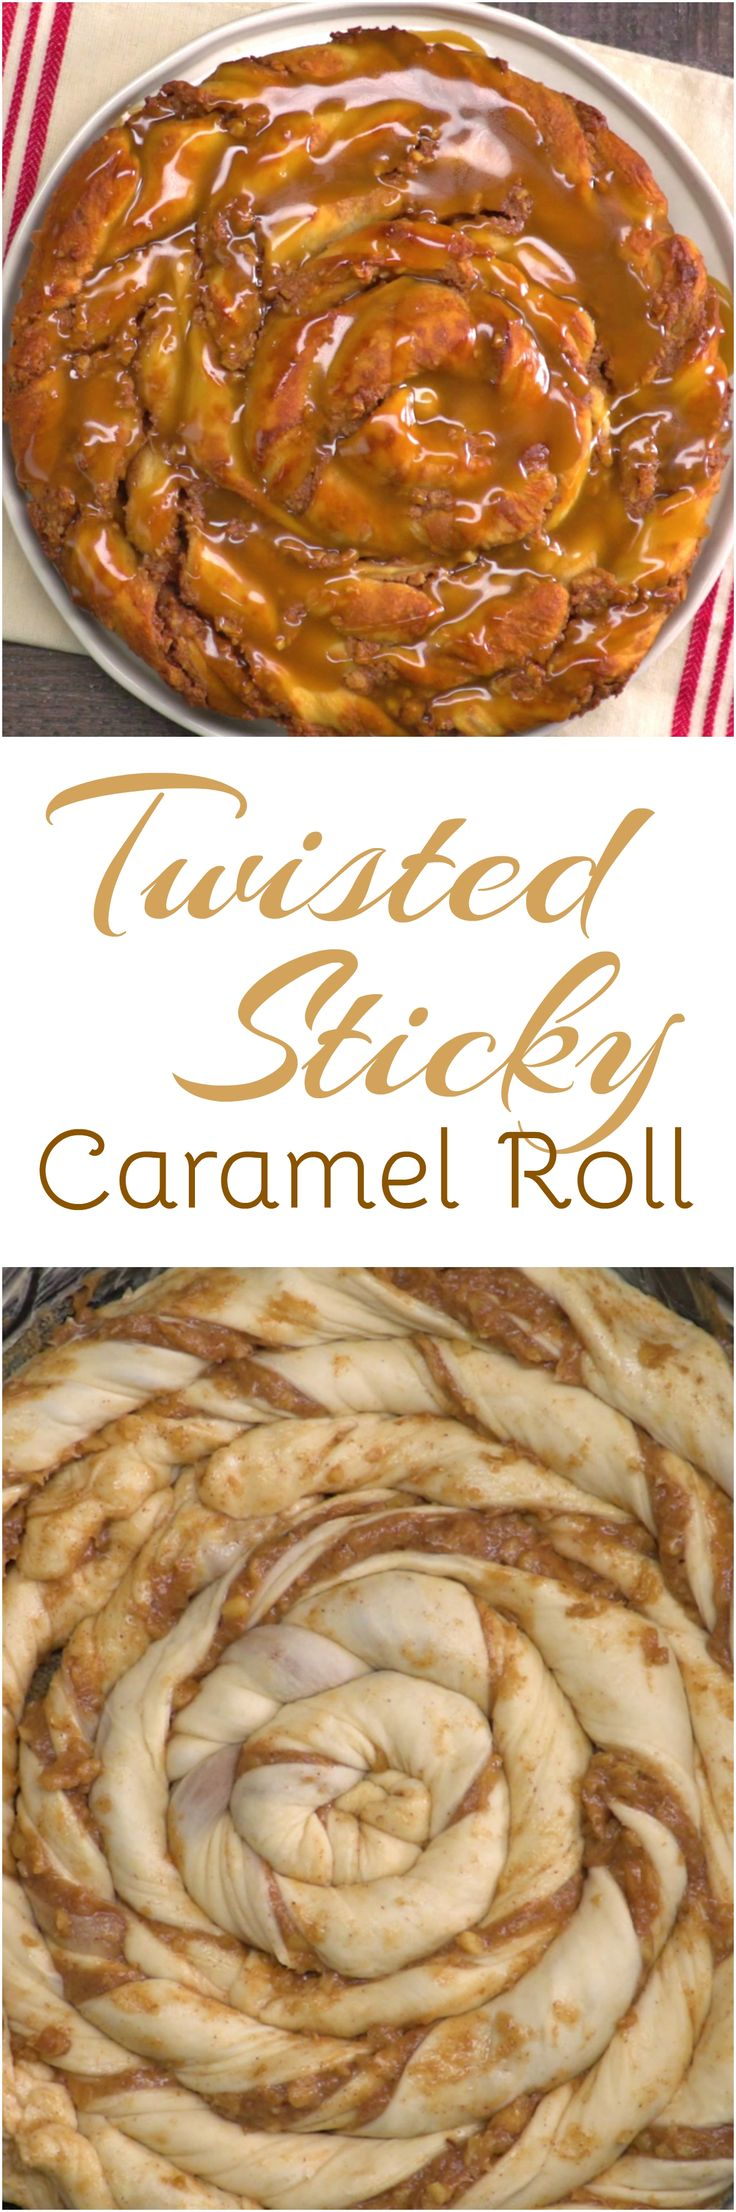 This twisted sticky caramel roll makes waiting for the weekend worth it. Think of this pull-apart breakfast treat as the ultimate sticky bun because you get a little bit of all of the best parts in every bite: the browned edges; the creamy, nutty center; and the soft, fluffy dough saturated with sticky caramel glaze.